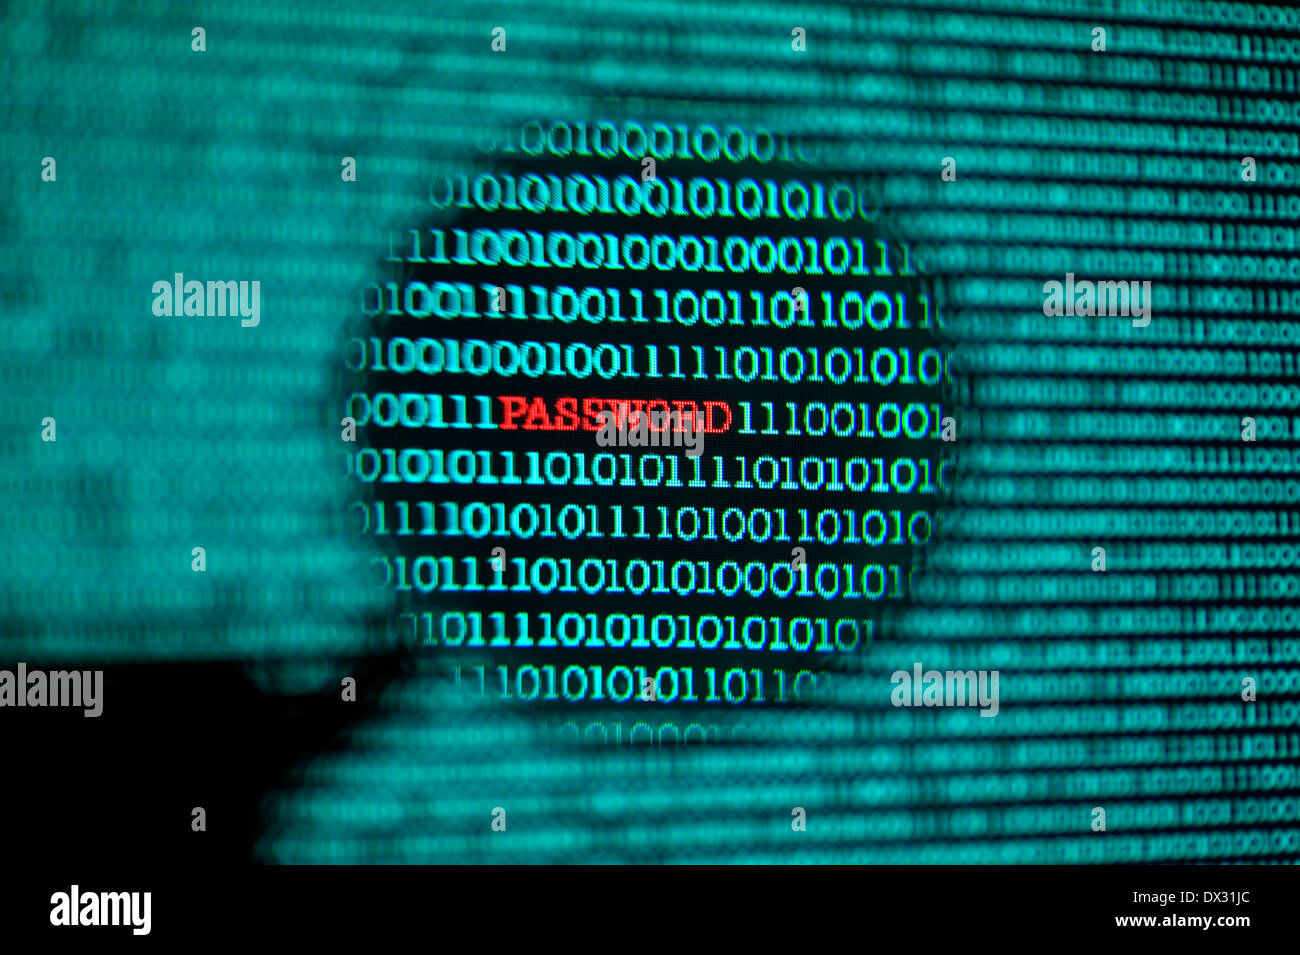 cyber crime password computer security stock photo 67679316 alamy